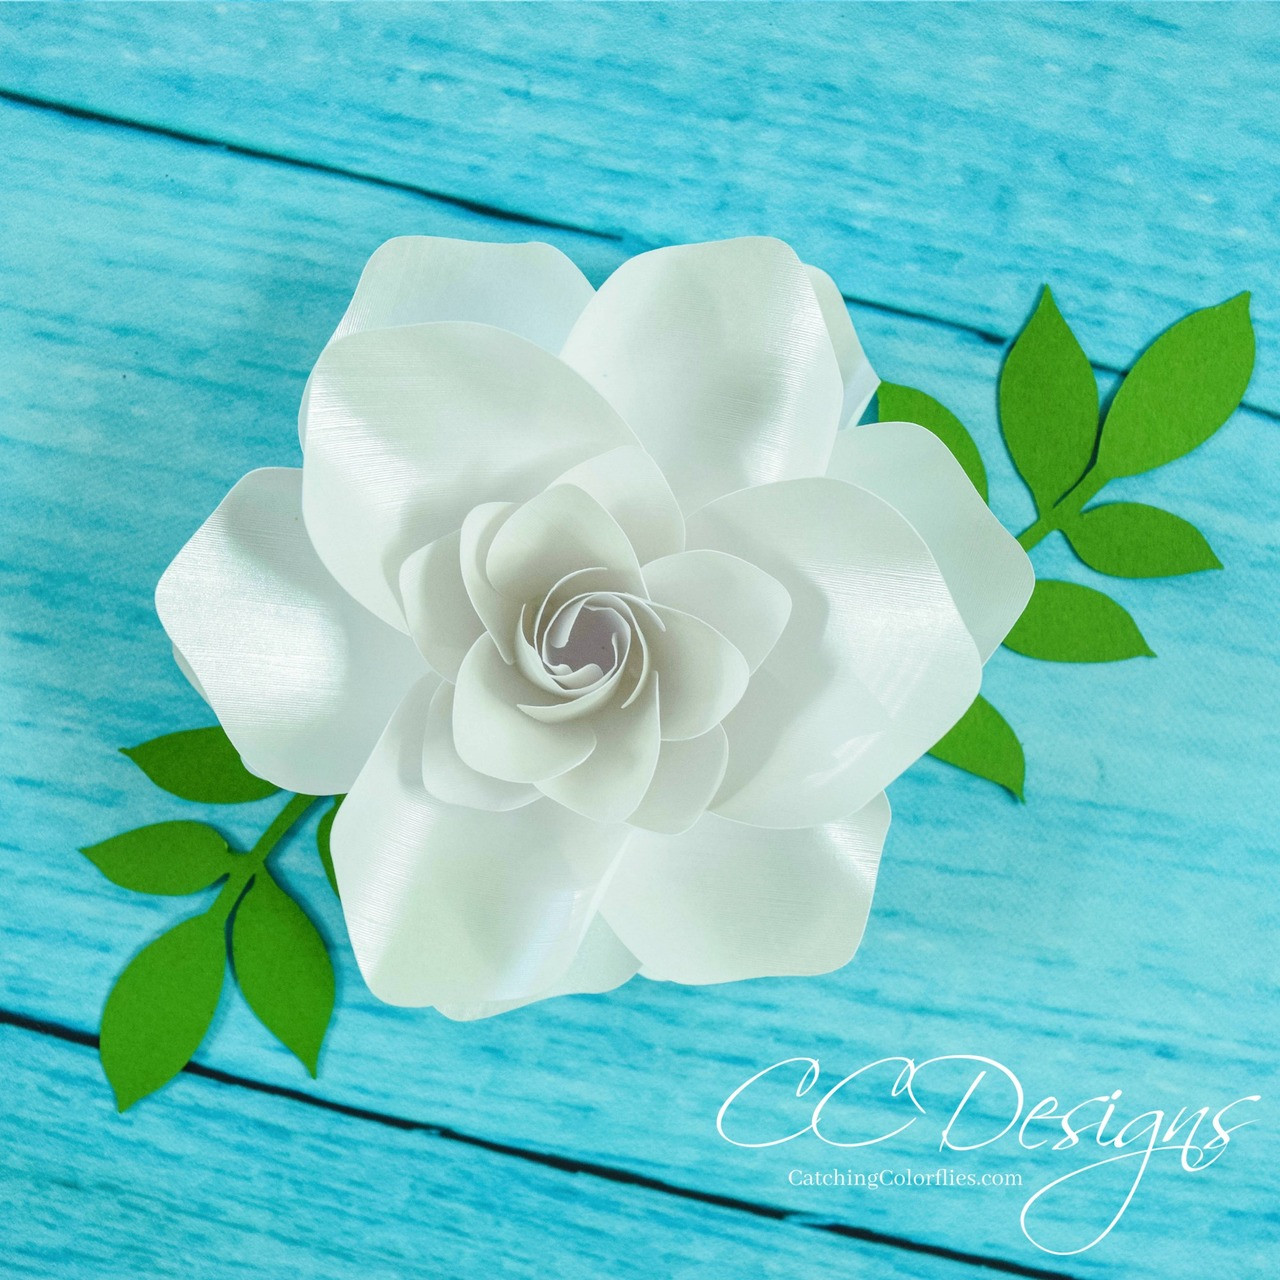 Small Gardenia Paper Flower Template Catching Colorflies